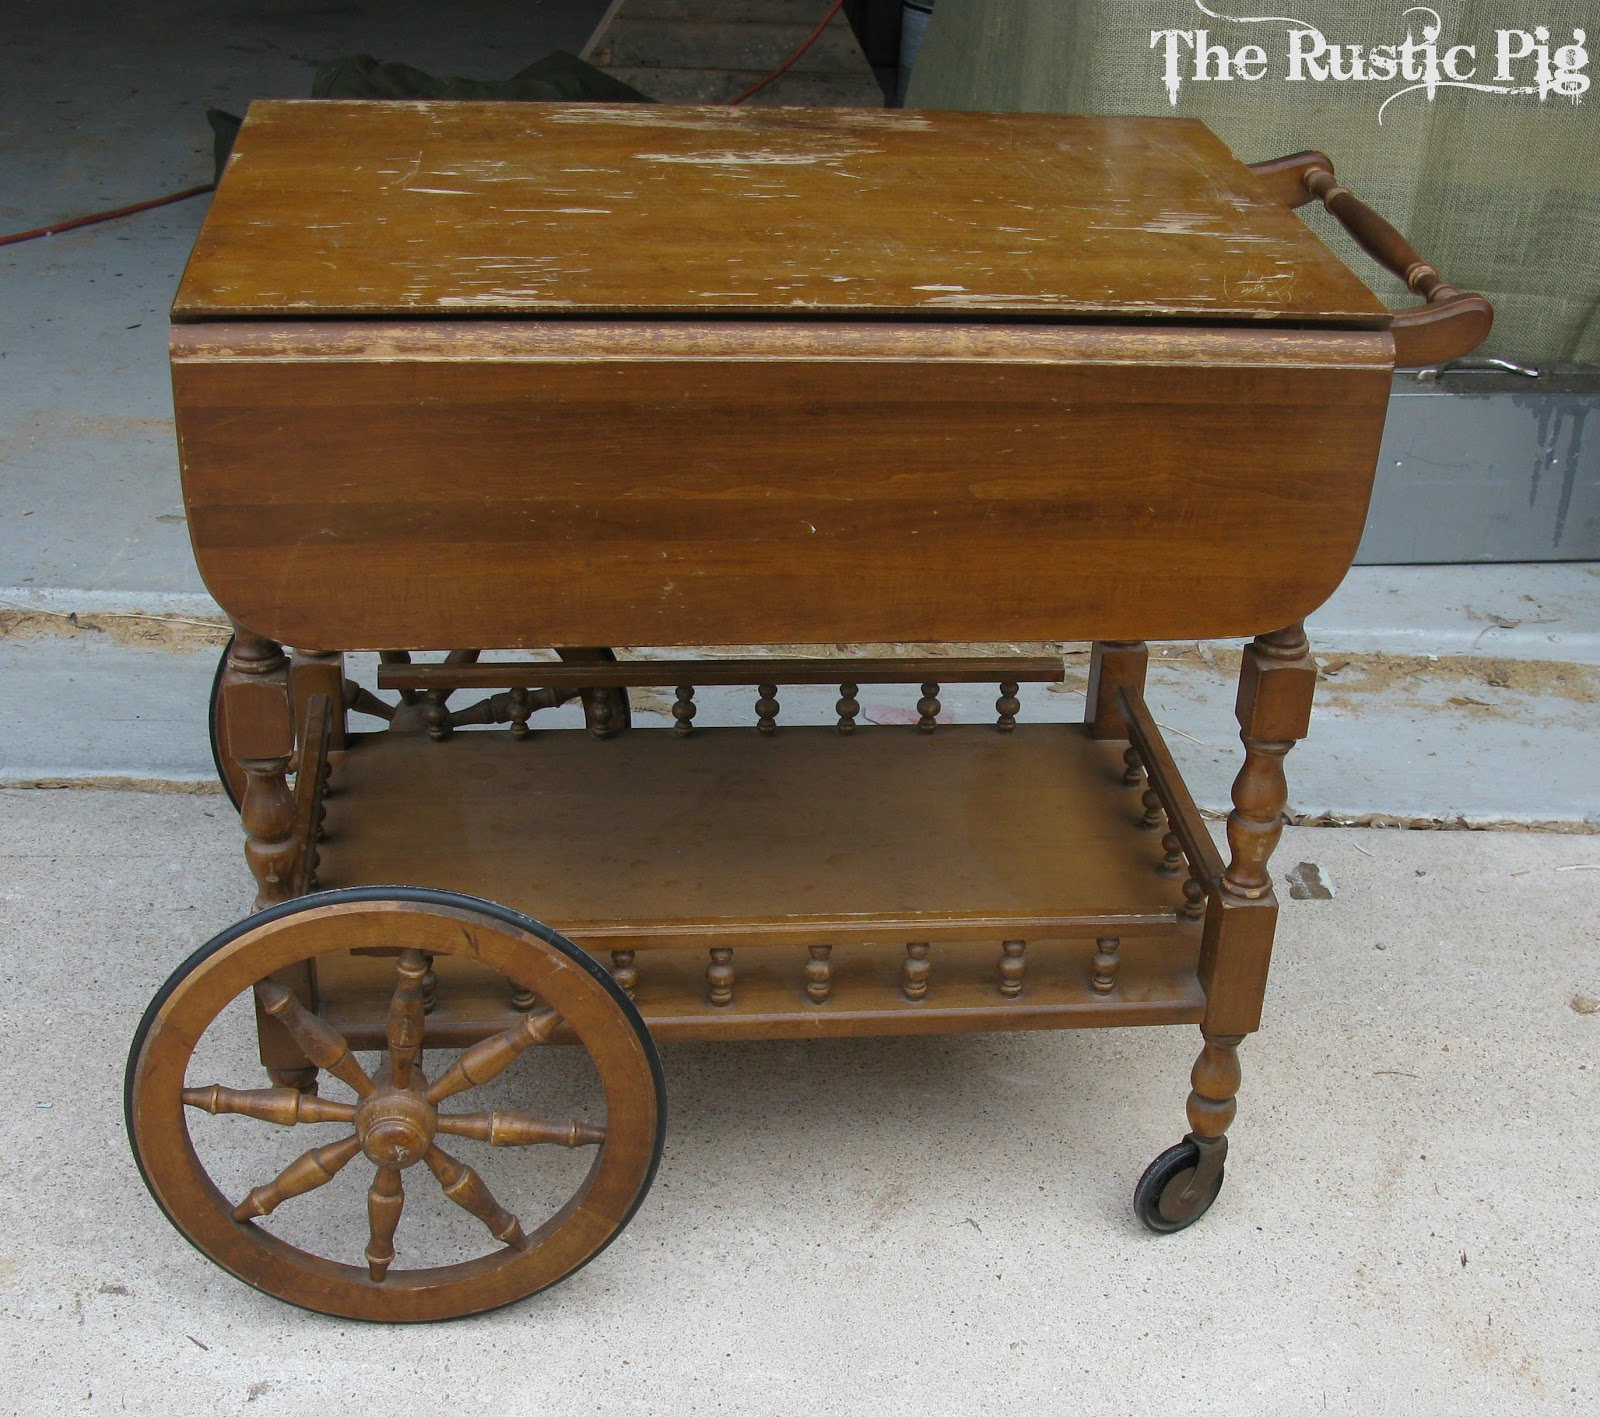 The Accidental Tea Cart The Rustic Pig